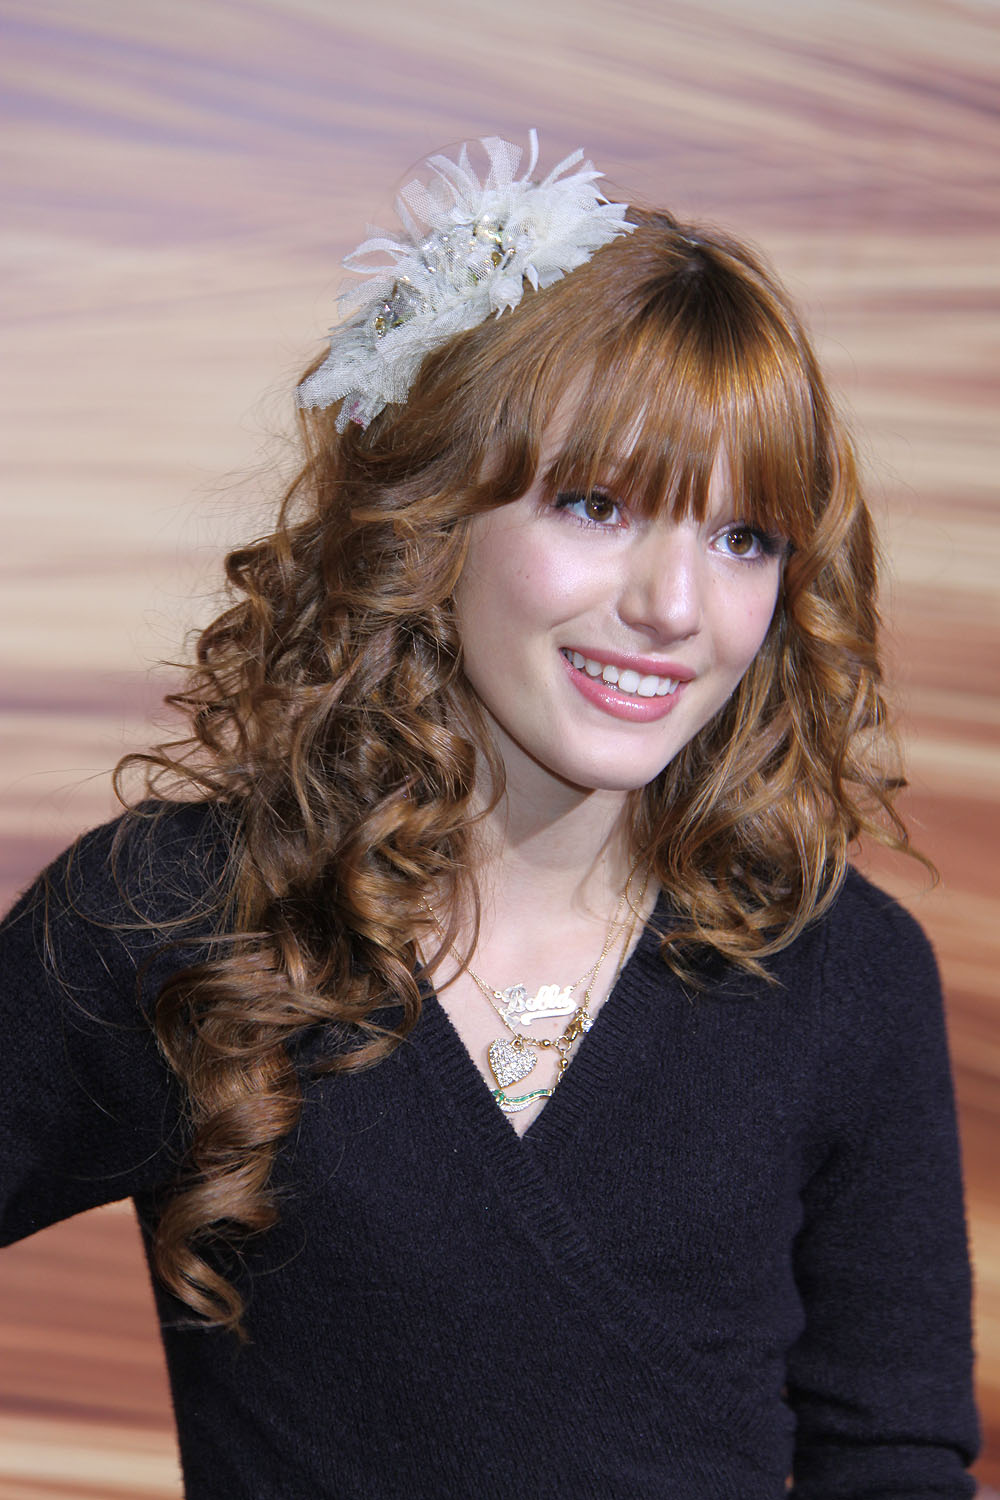 actress and model Bella Thorne